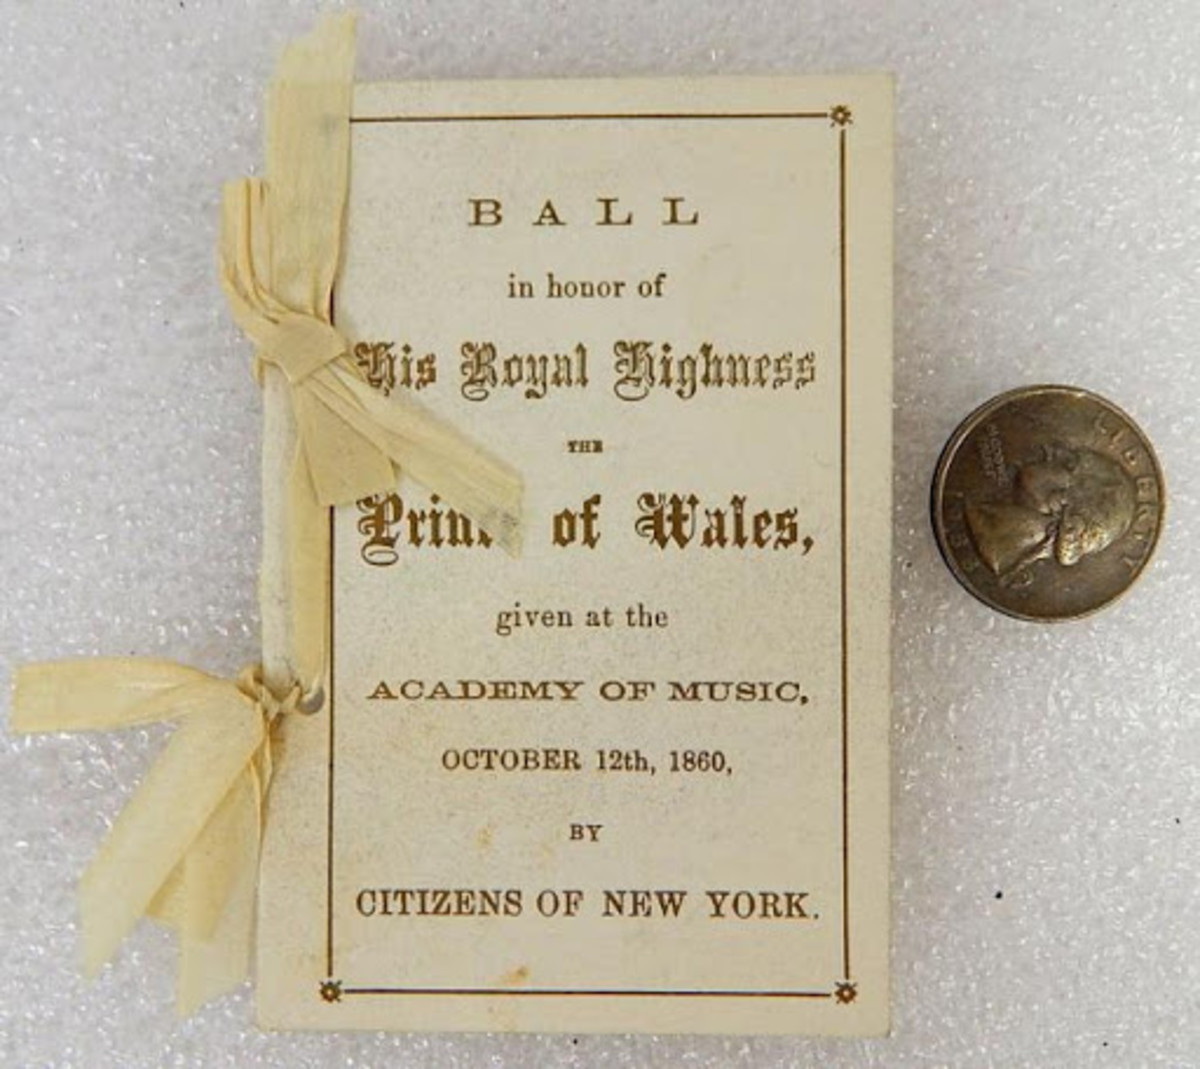 Ball for Prince of Wales